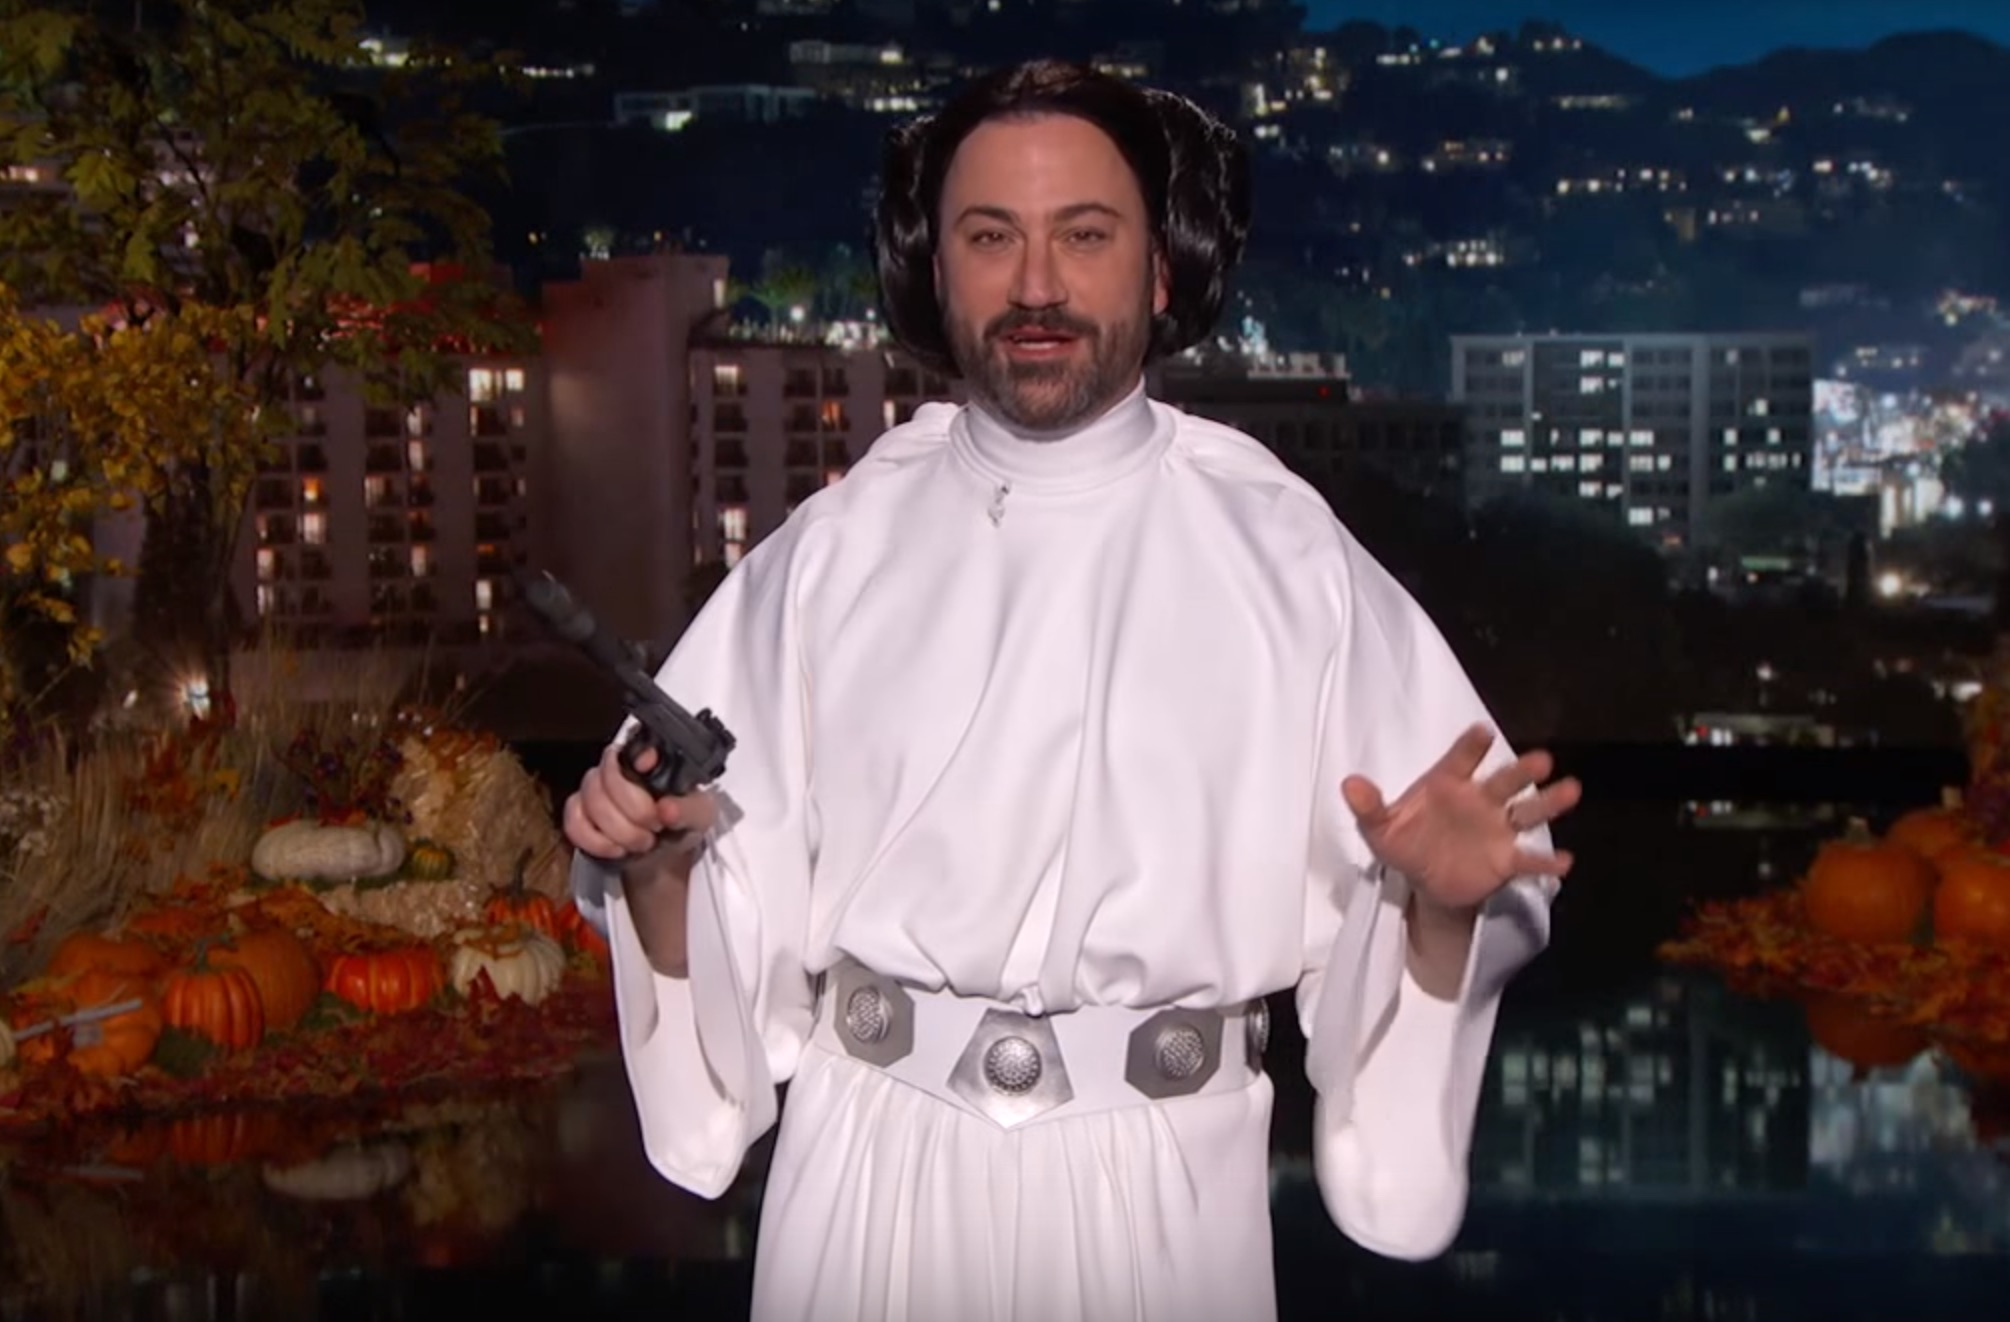 Looking for a last-minute punny Halloween costume? Jimmy Kimmel has your back